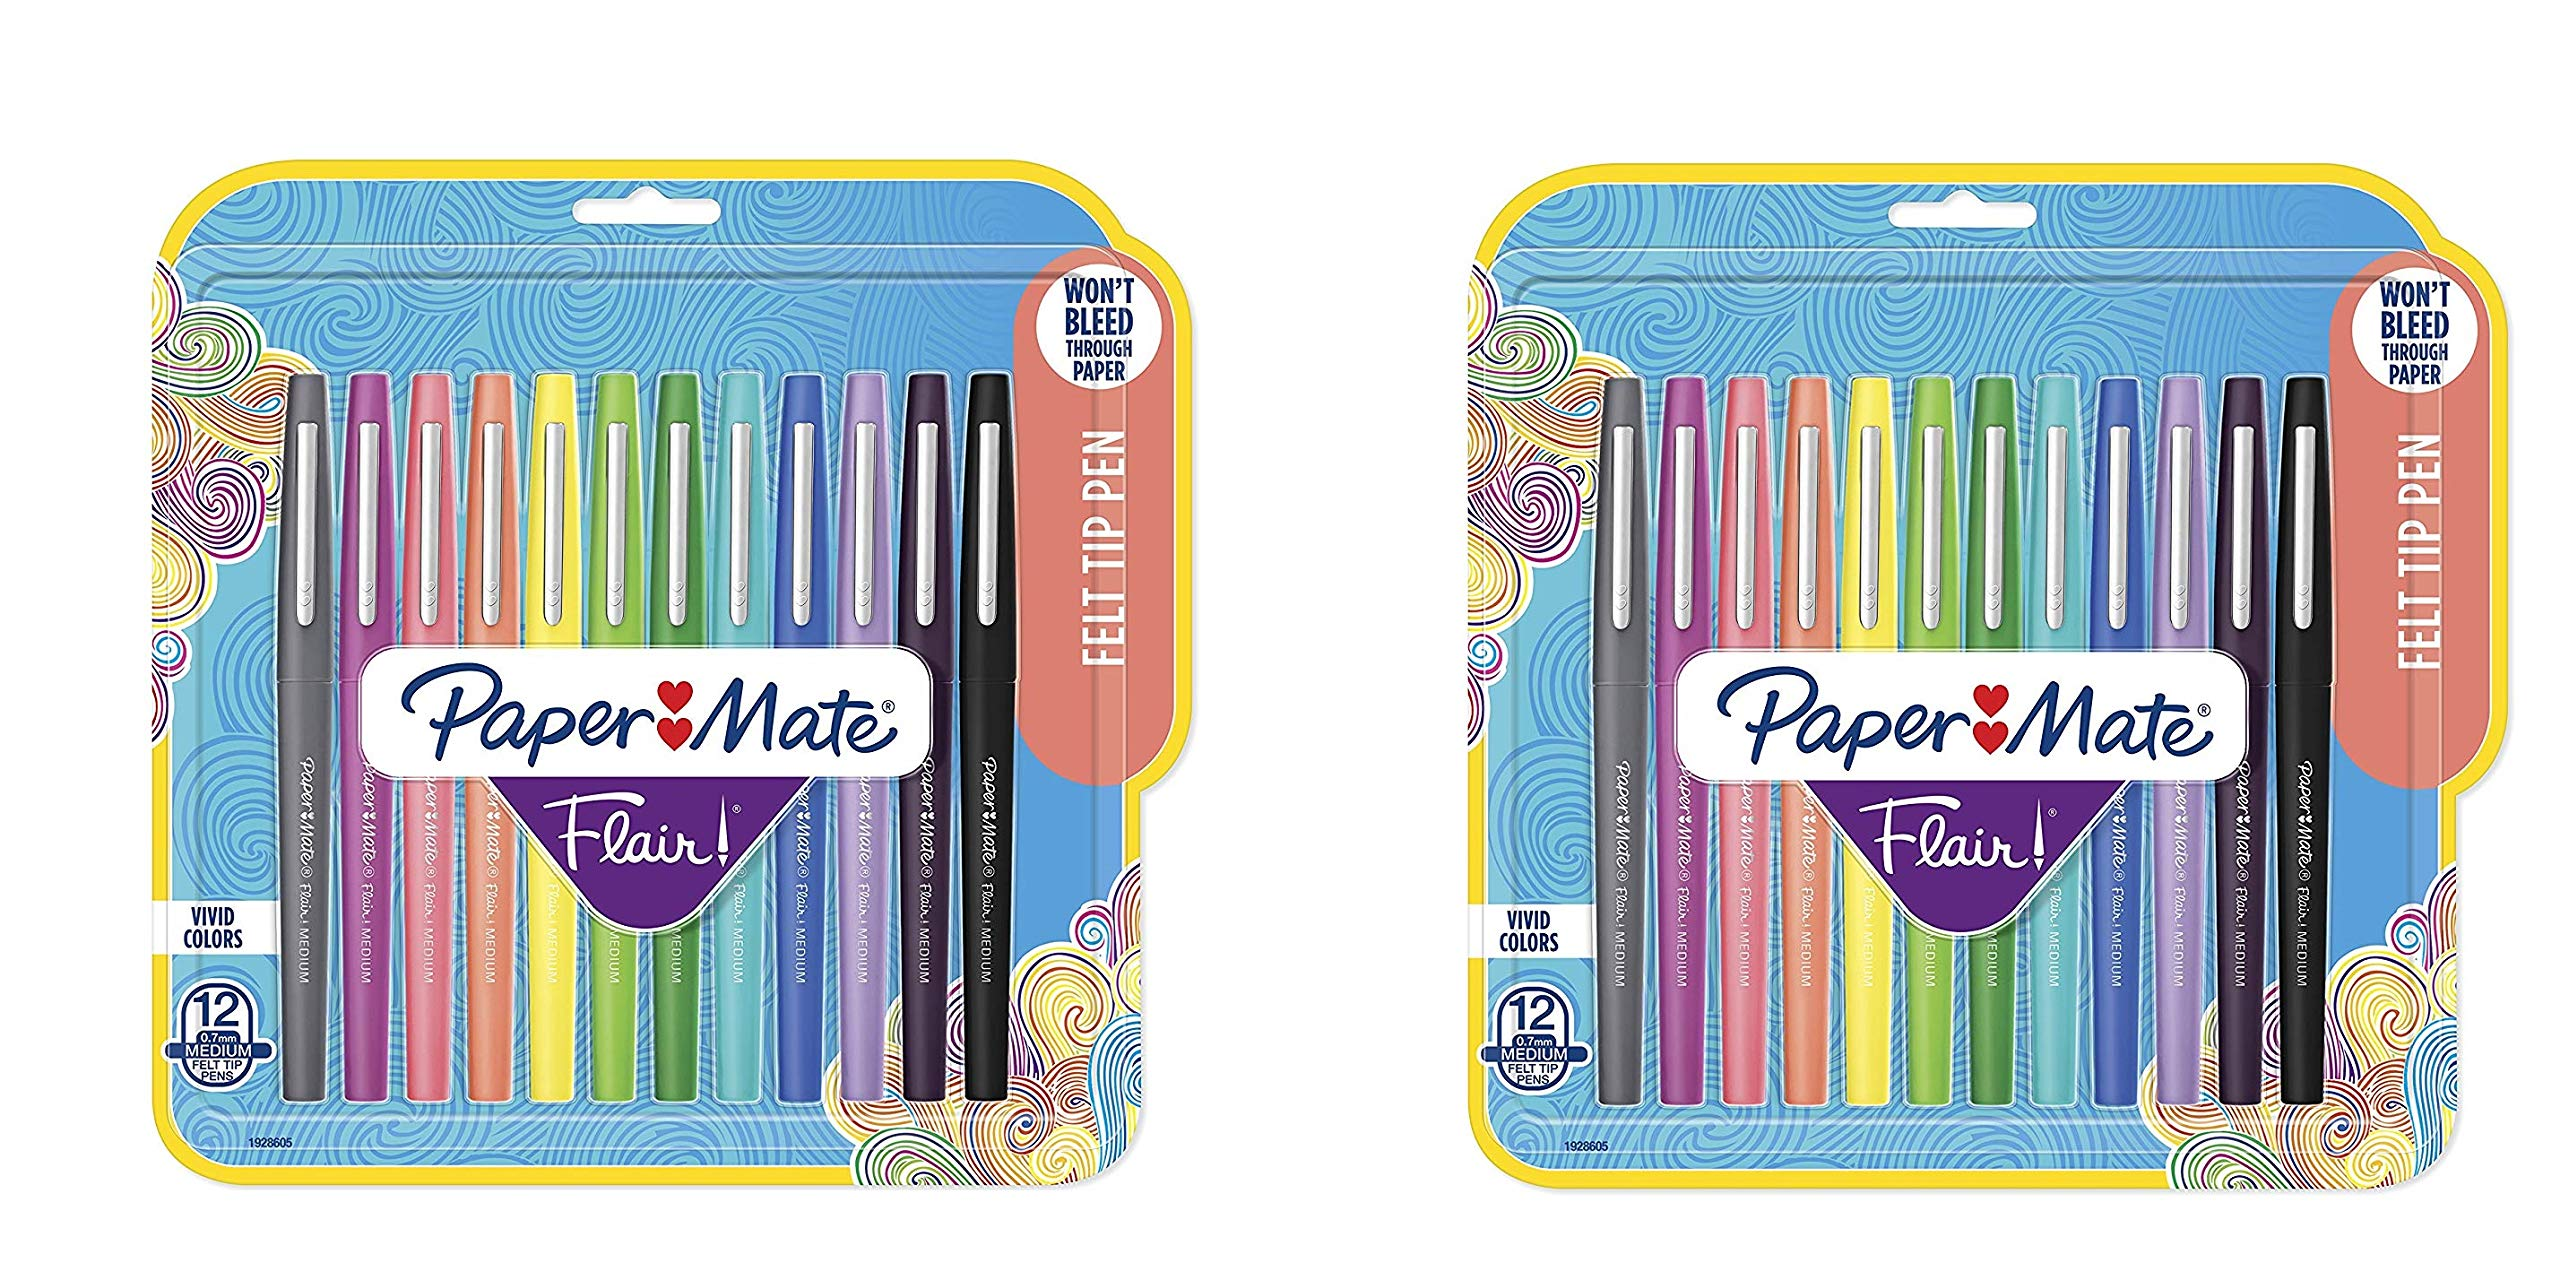 1928605 Flair Felt Tip Pens, Medium Point (0.7mm), Tropical and Classic Colors, 12 Count WypLeG